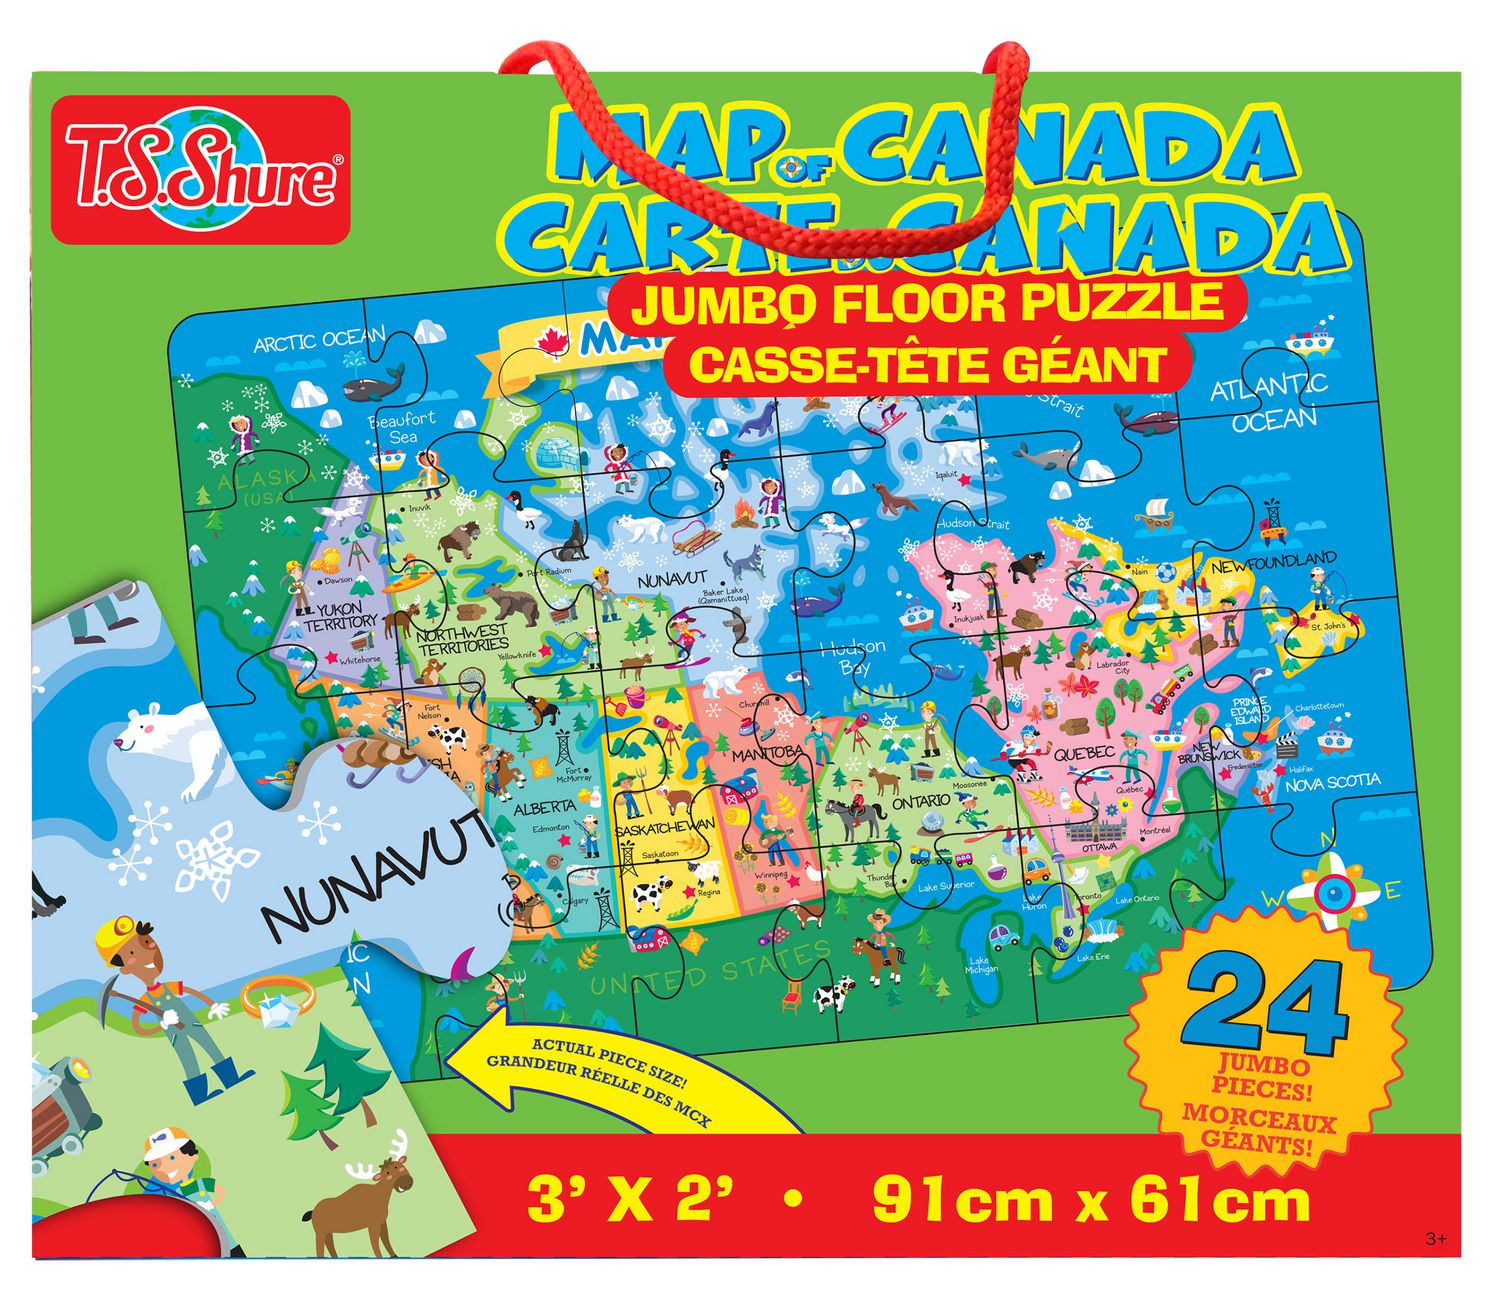 Map Of Canada Puzzle.T S Shure Map Of Canada Jumbo Floor Puzzle